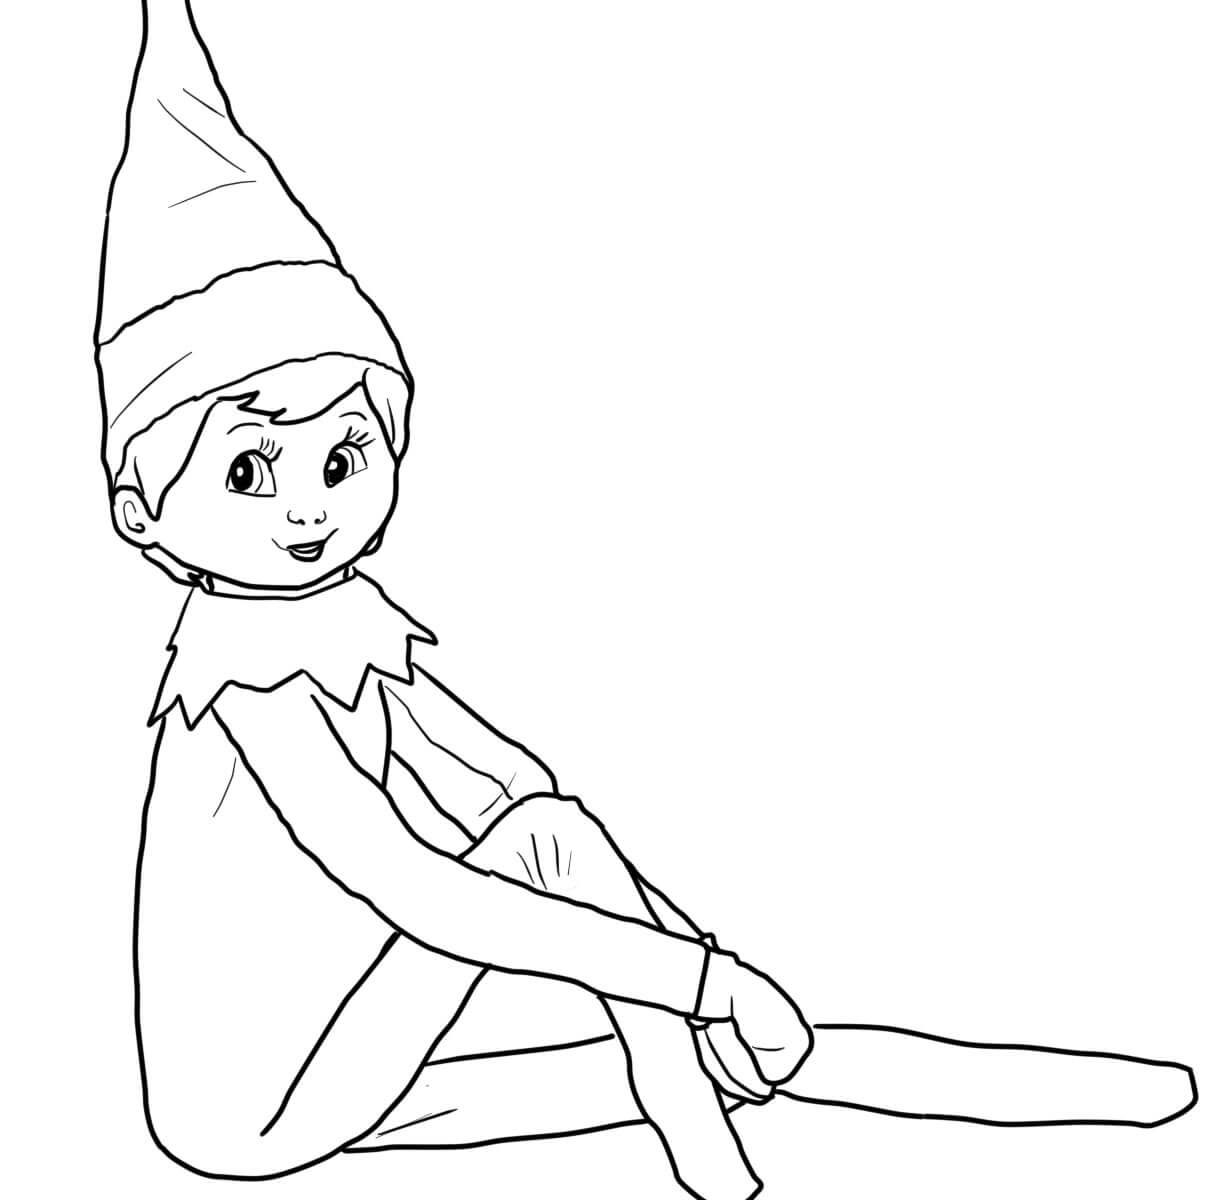 1224x1200 Elves Coloring Pages Topf Pic Singular For Kids On The Shelf